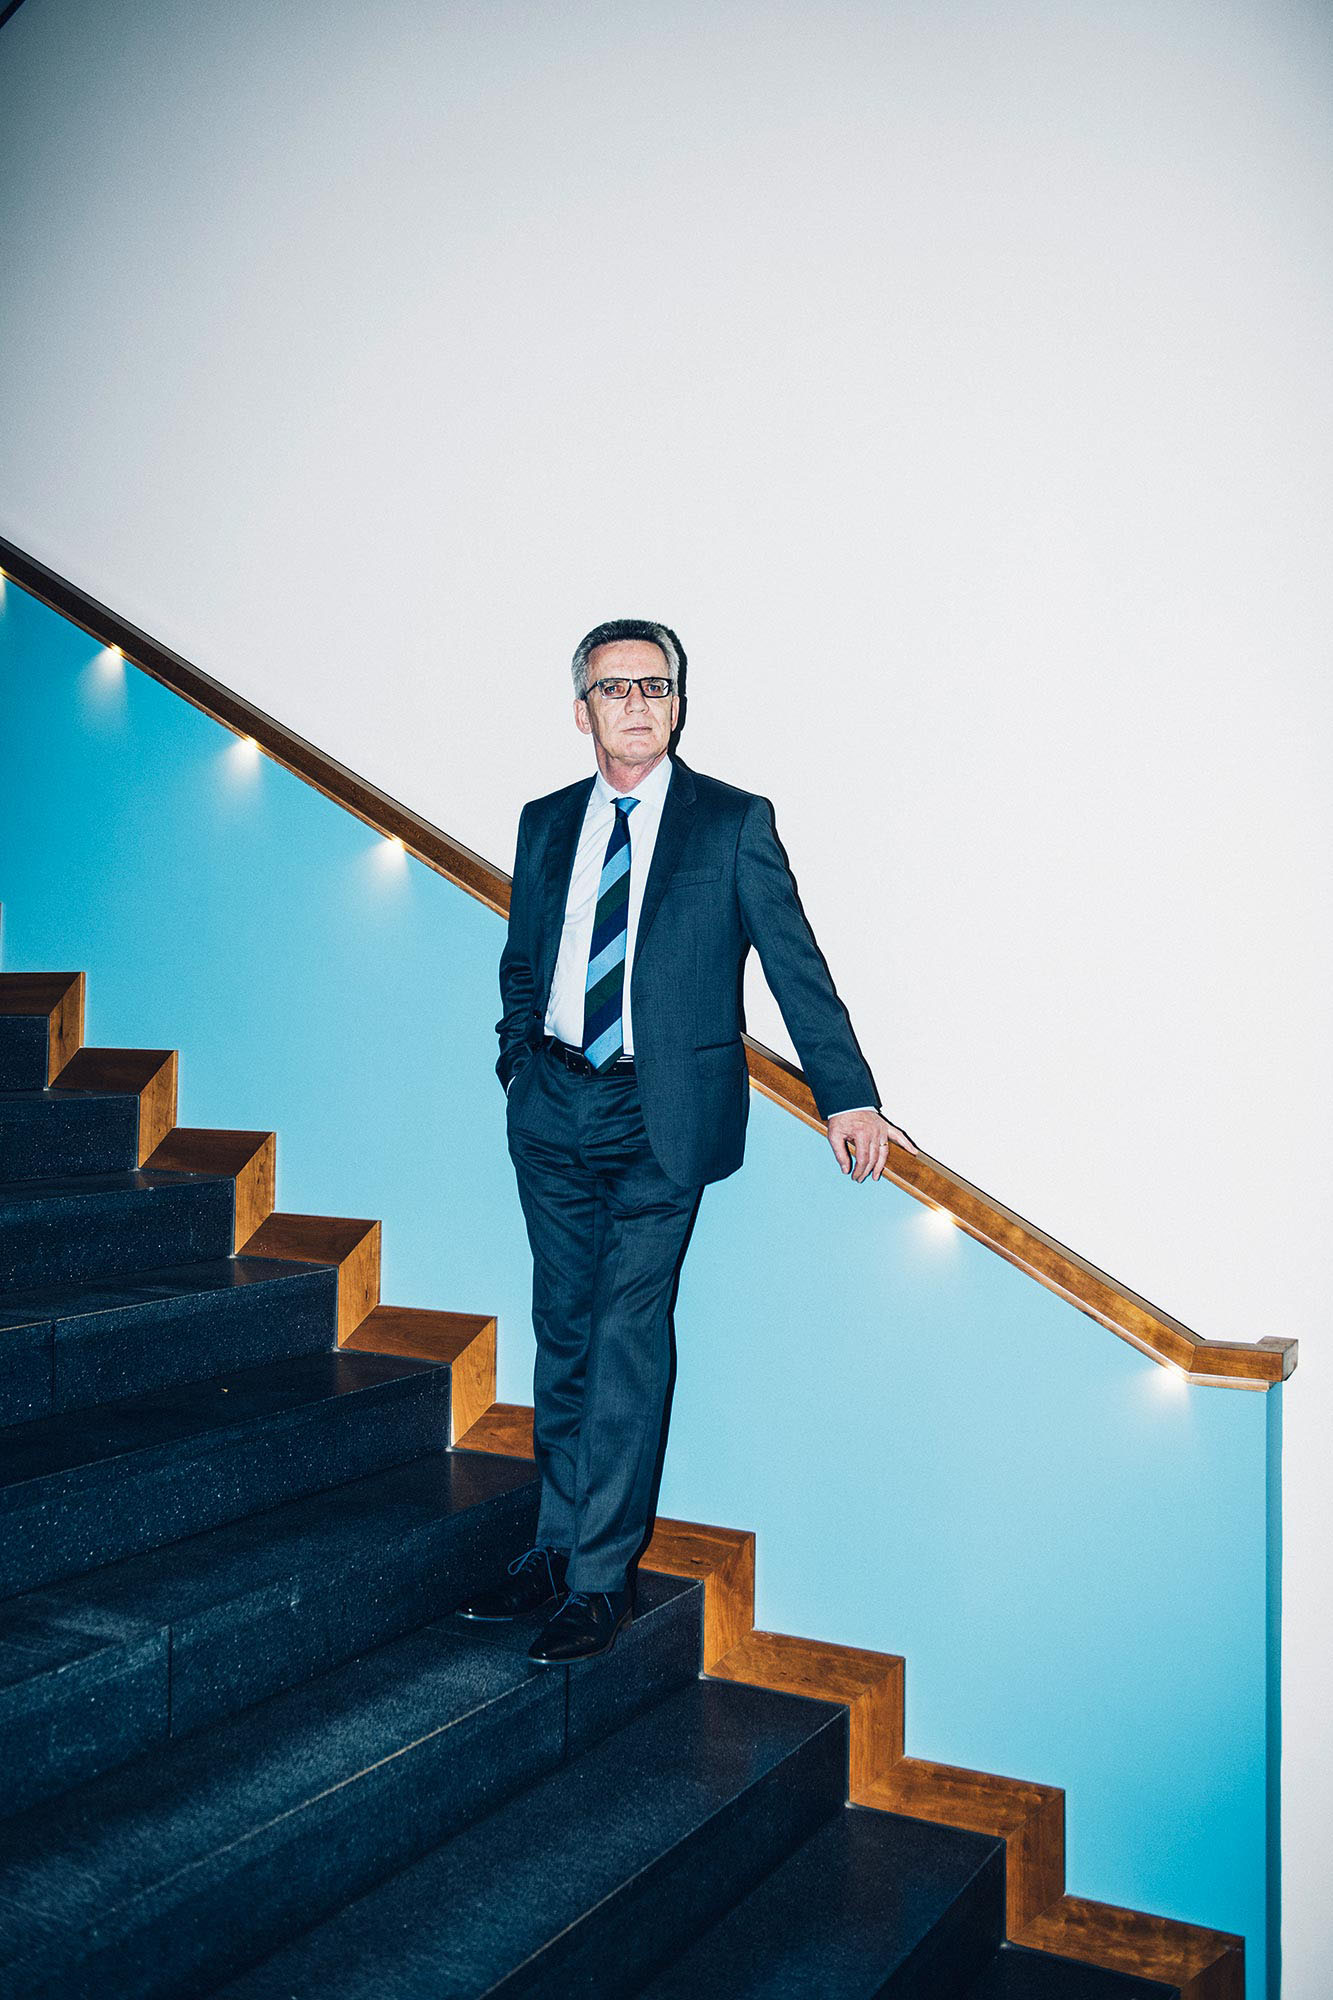 urban zintel photography — thomas de maizière